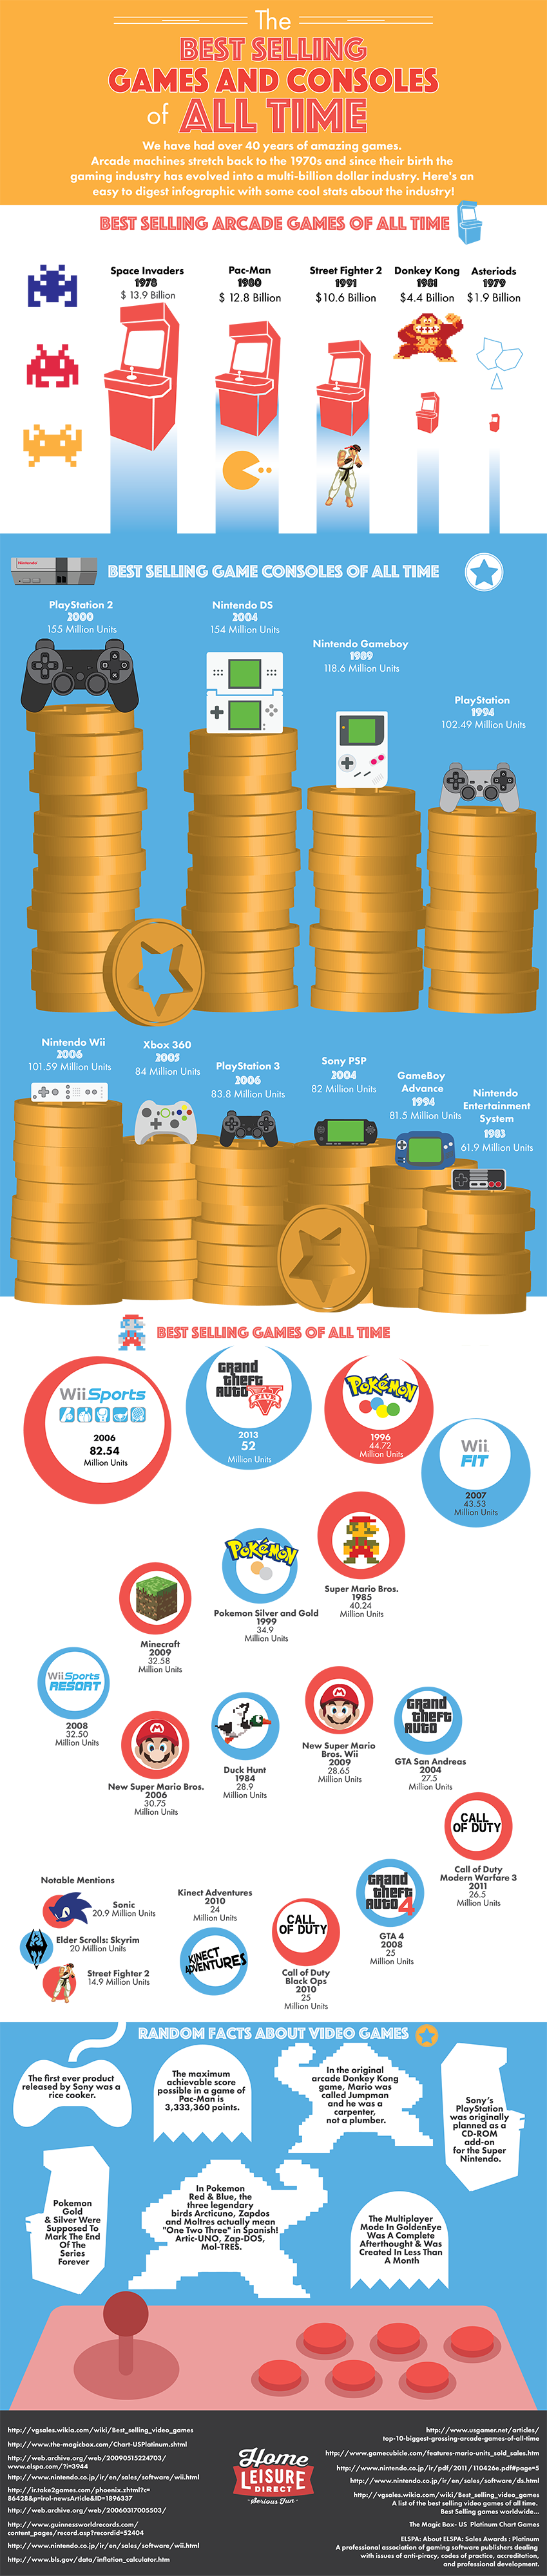 Best Selling Arcade Games, Video Games & Consoles of All Time